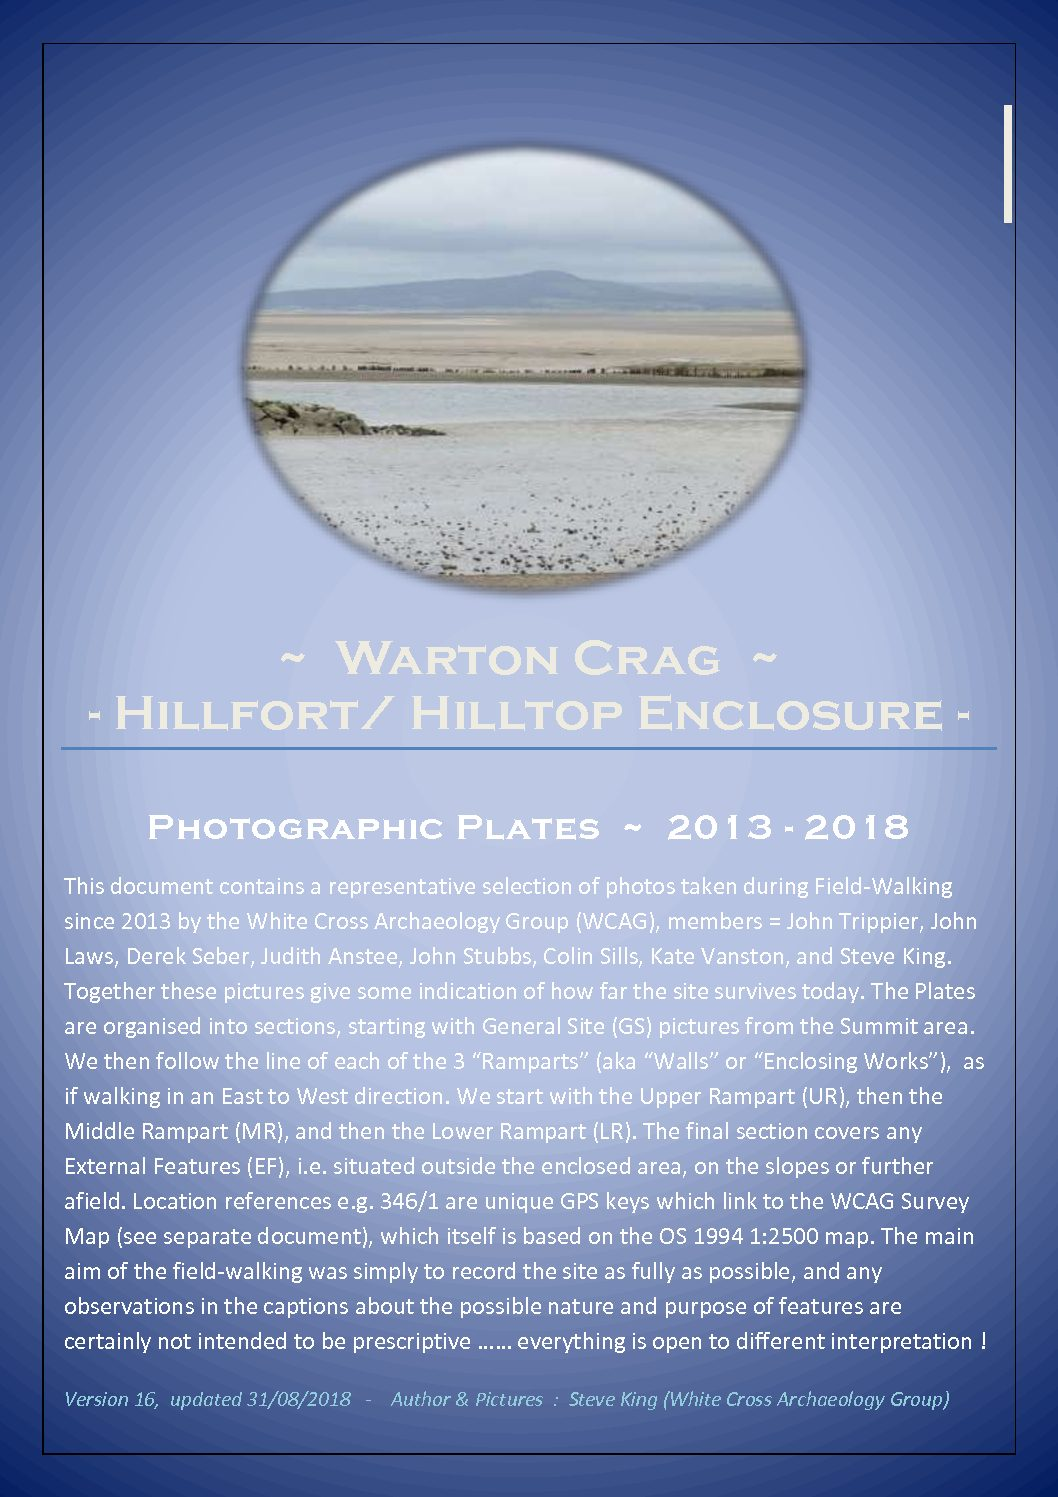 120 x Site Images and Notes from Photographic Archaeological Survey of Warton Crag between 2013 - 2018 by White Cross Archaeology Group